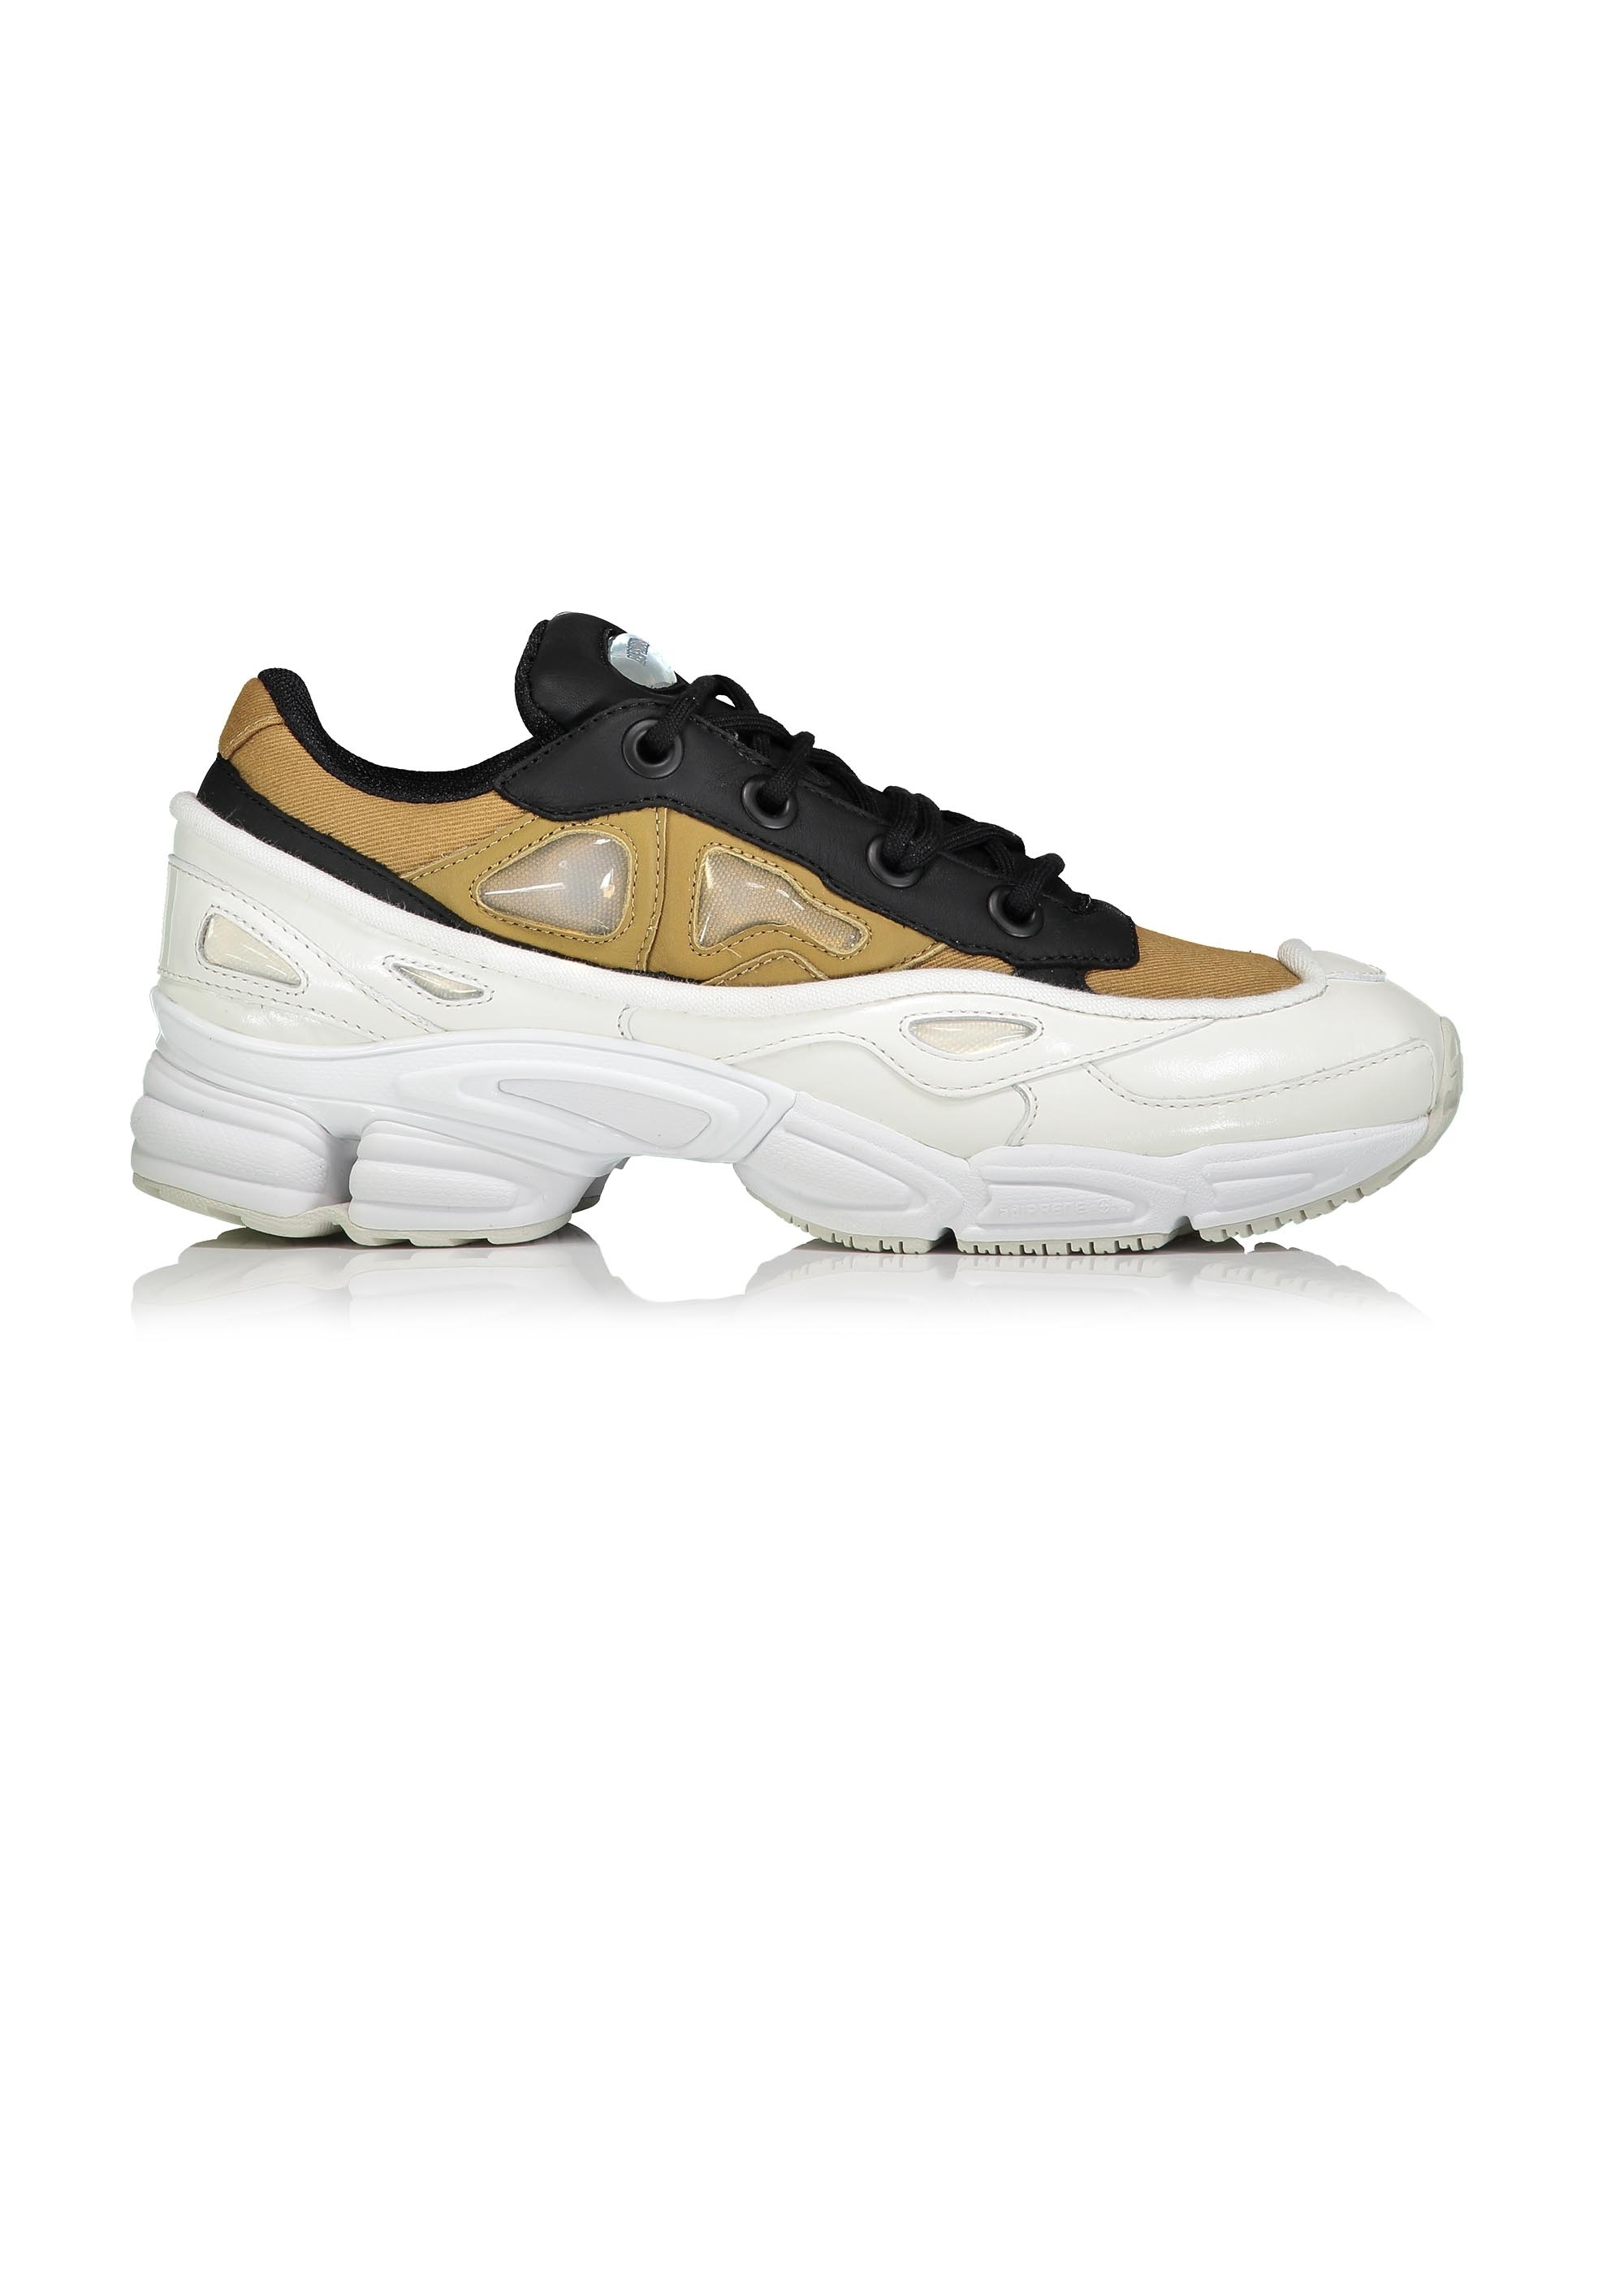 best website 0c246 702a5 adidas Originals by Raf Simons Ozweego III - White / Khaki